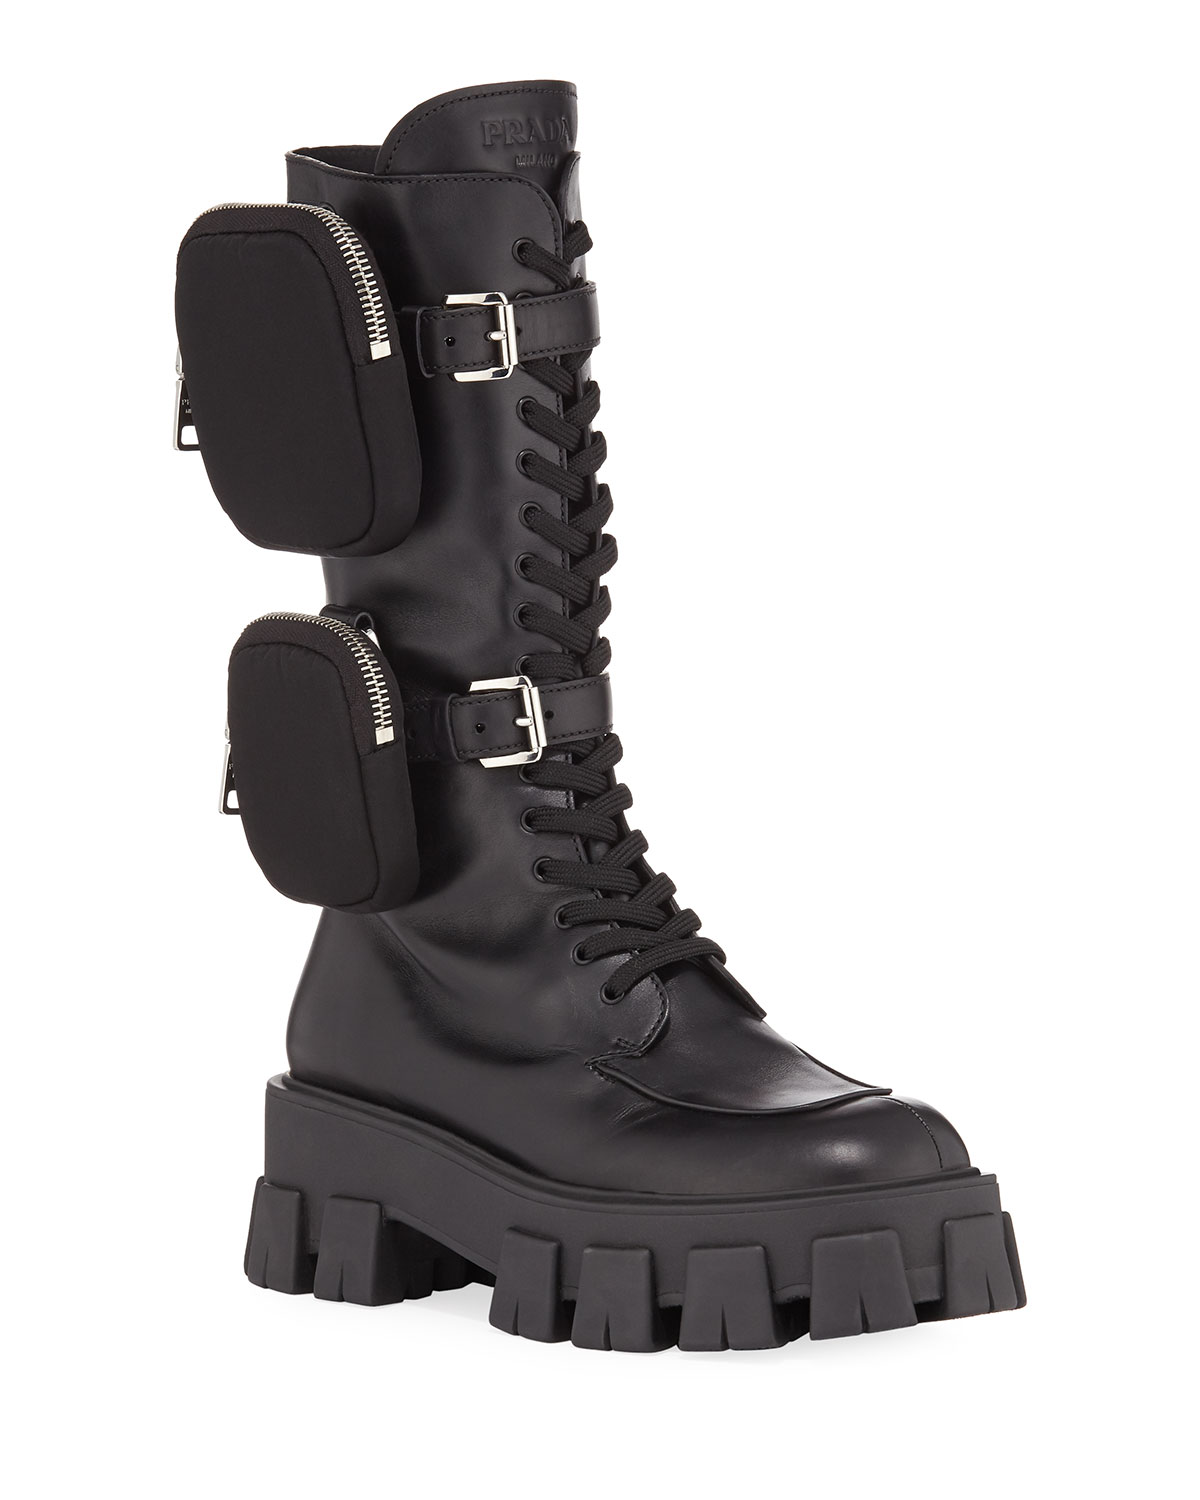 55mm Lace-Up Zip Pouch Platform Moto Boots by Prada, available on neimanmarcus.com Kendall Jenner Shoes Exact Product